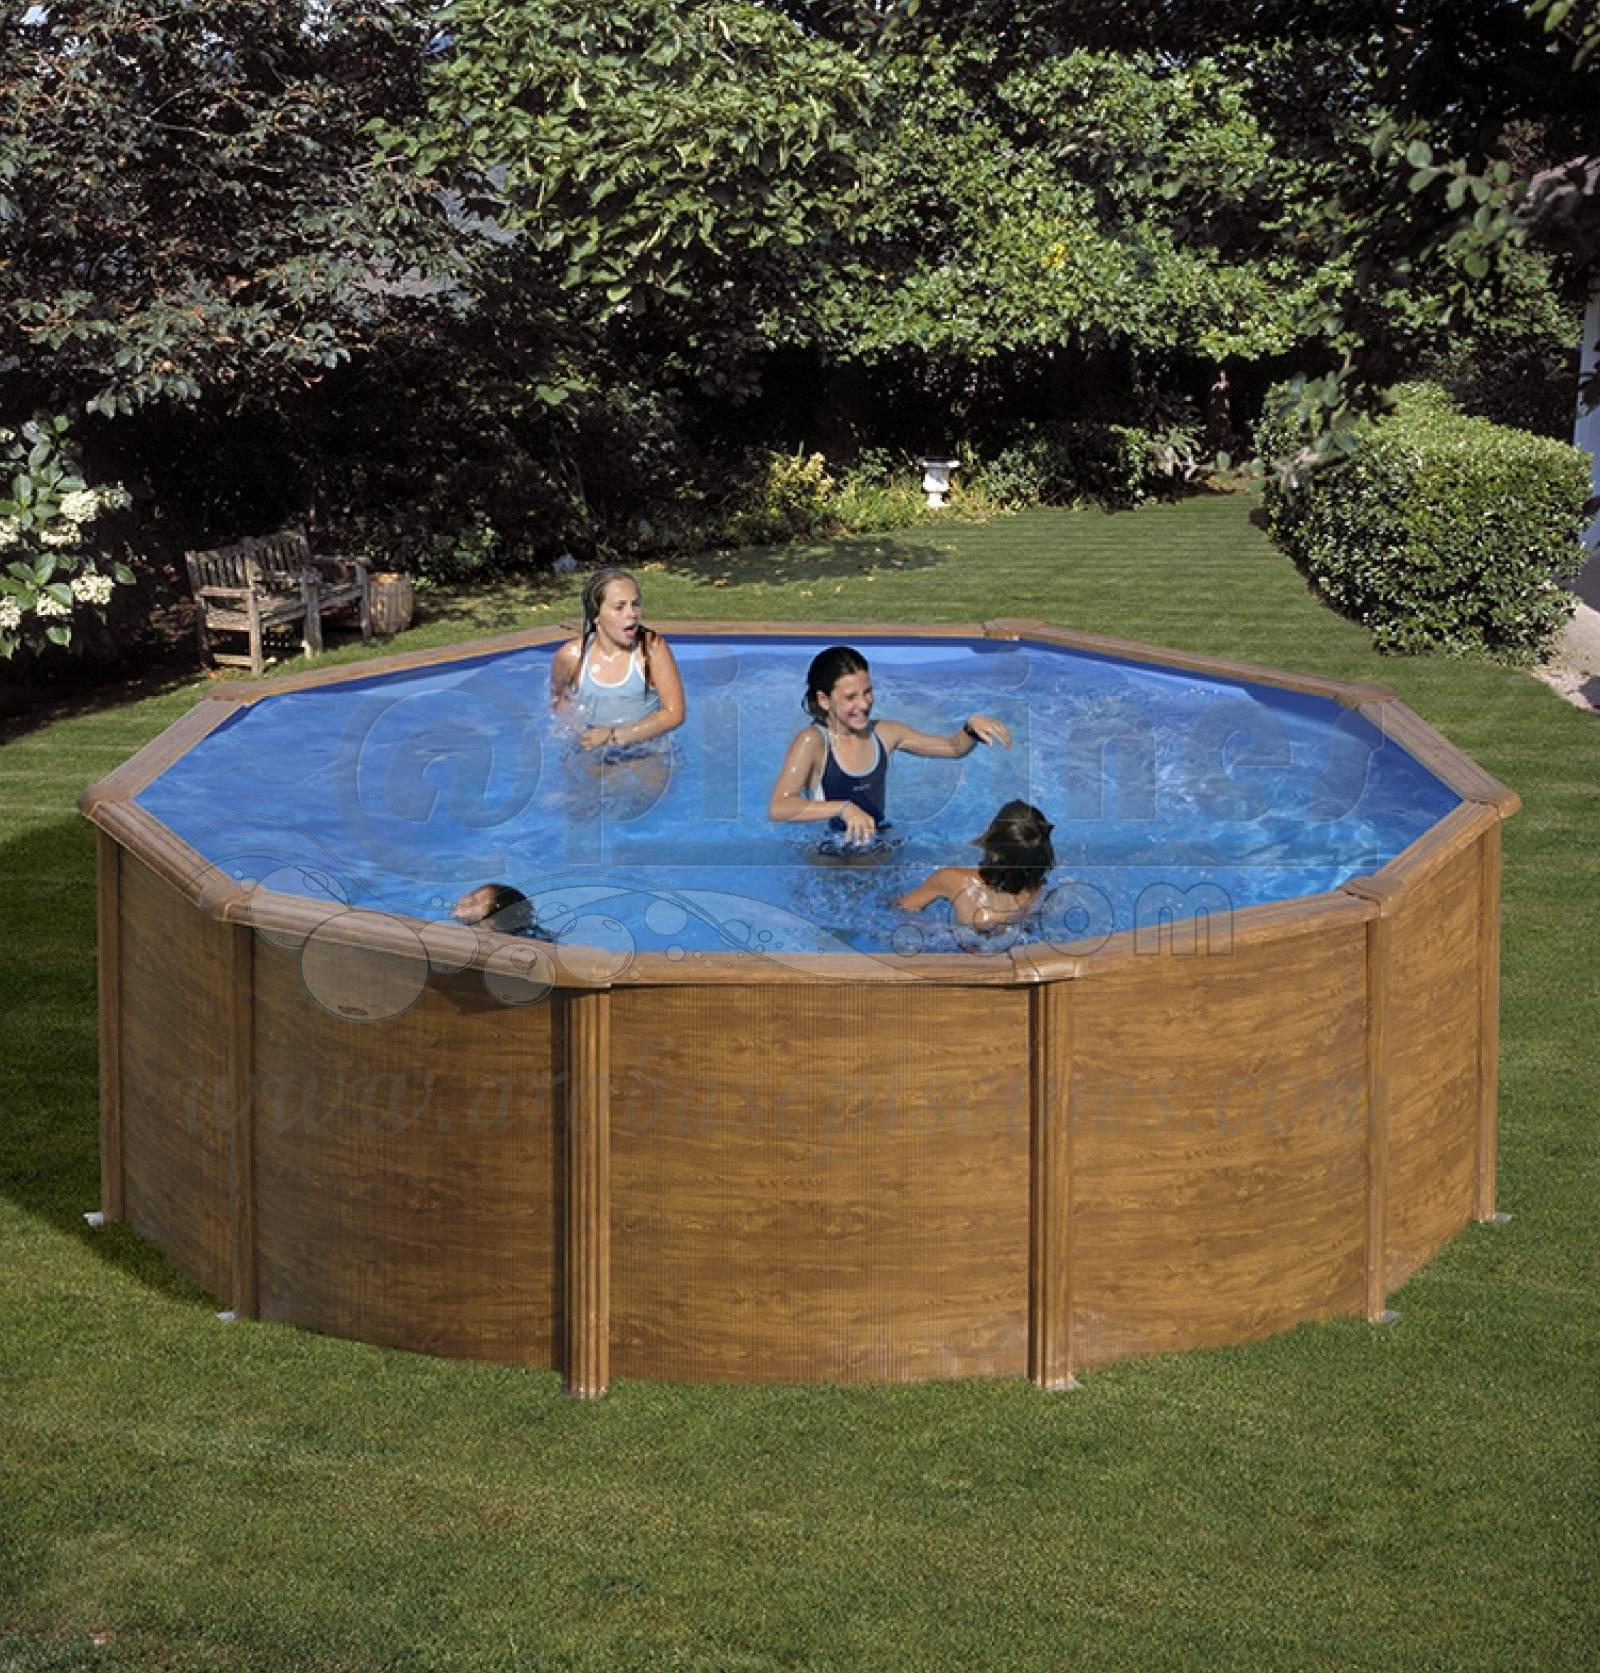 piscine en kit hors sol acier immitation bois 4 60m de diam tre piscine en ligne arobase piscines. Black Bedroom Furniture Sets. Home Design Ideas